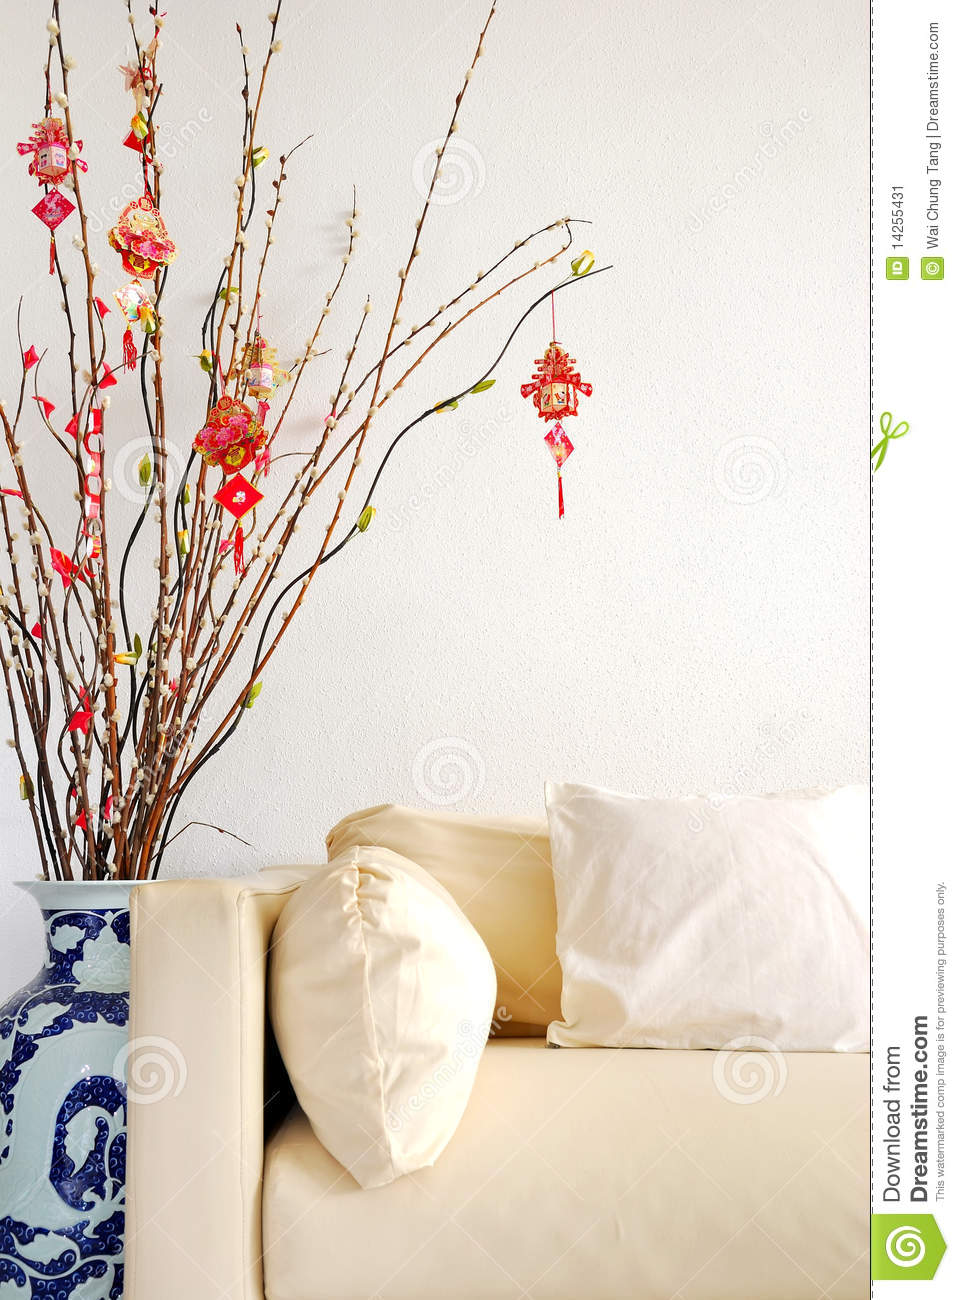 Chinese lunar new year decoration stock image image - Lunar new year decorations ...